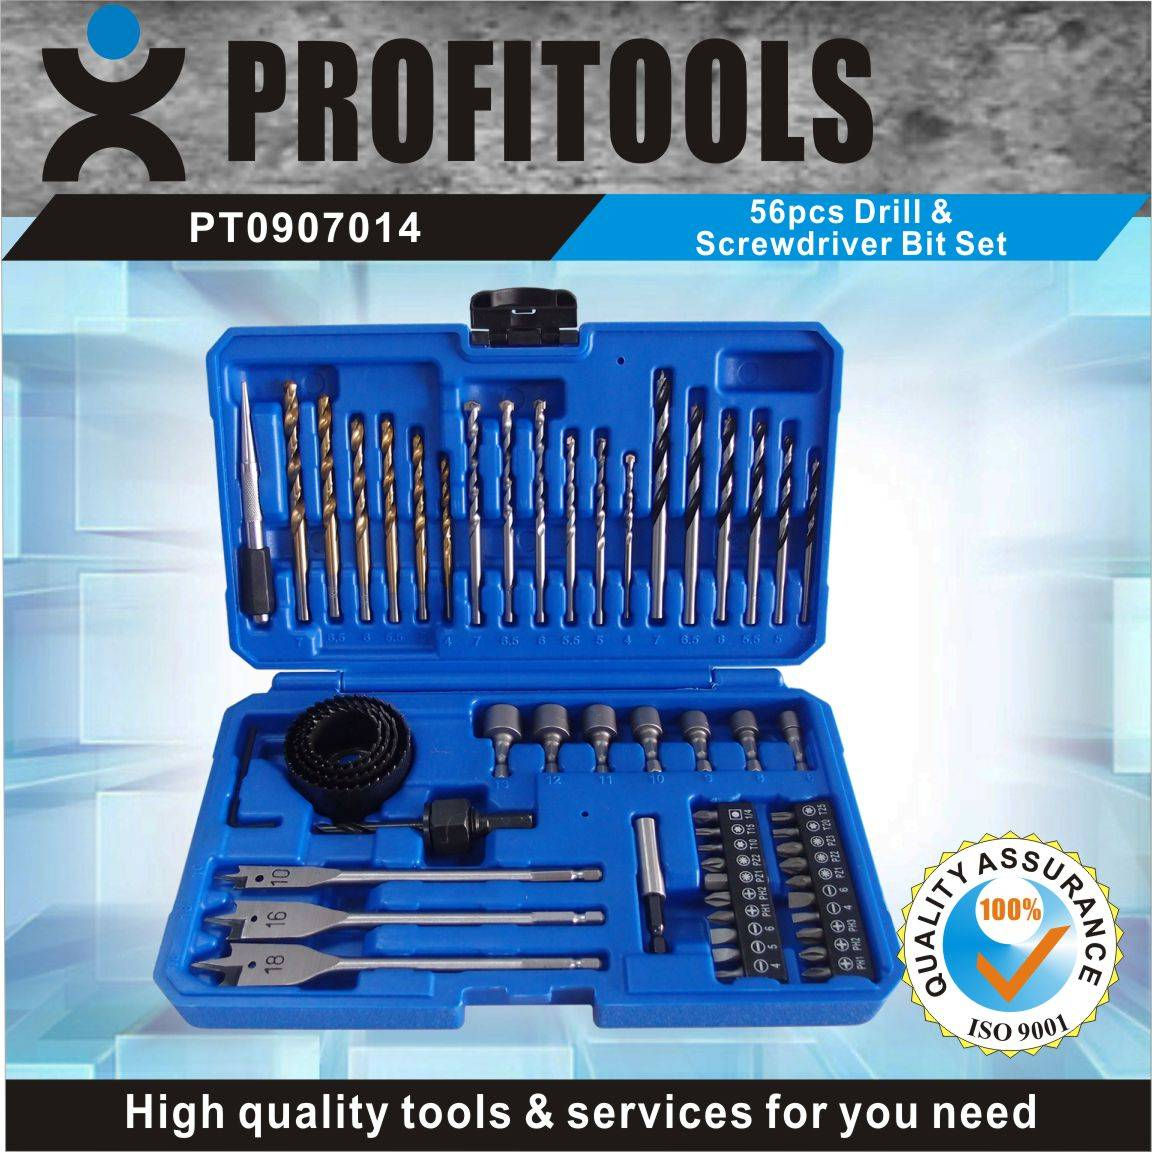 56pcs drill and srewdriver bit set